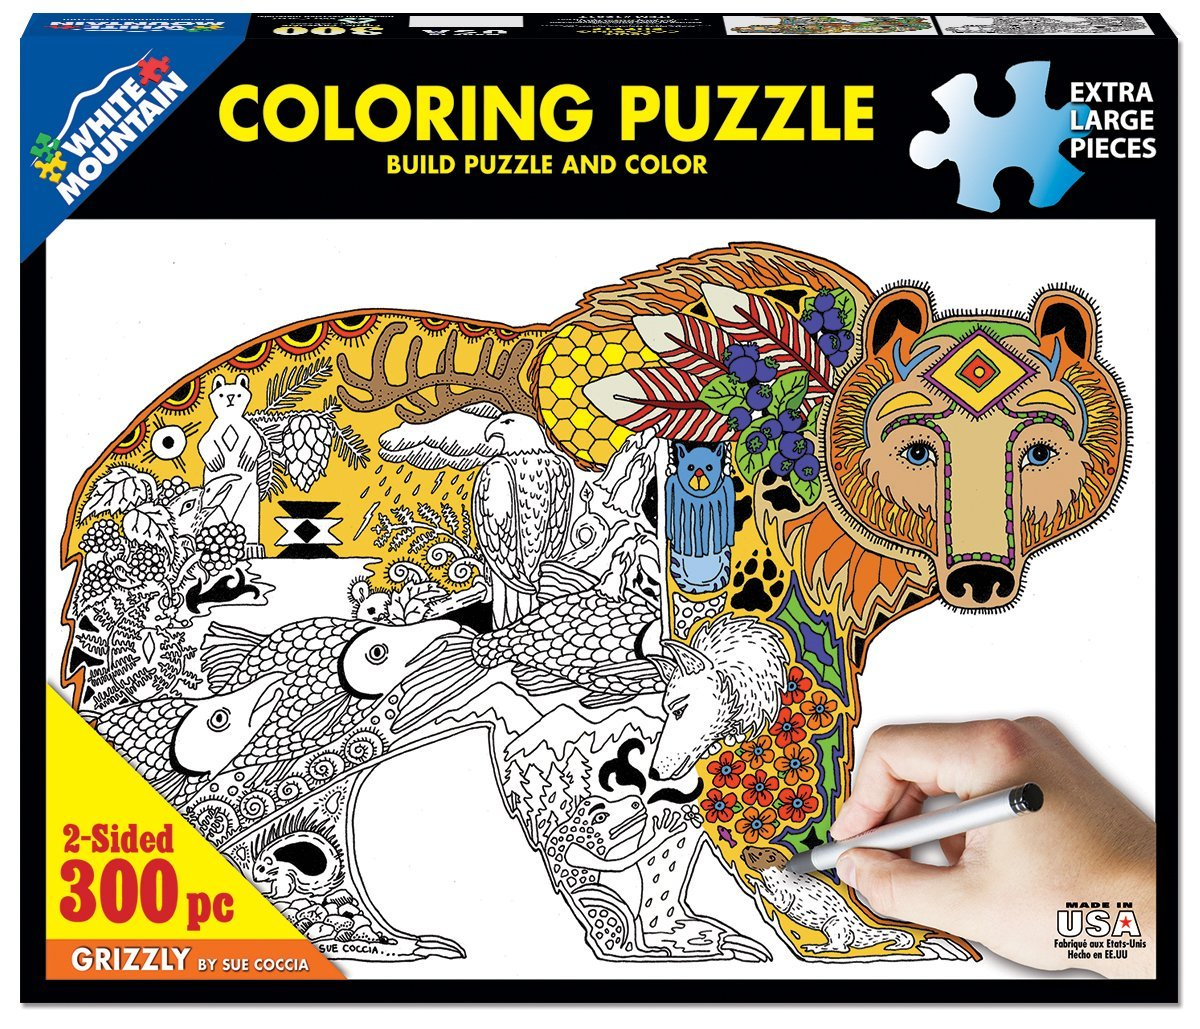 White Mountain Puzzles Grizzly Coloring Puzzle - 300 Piece Jigsaw Puzzle